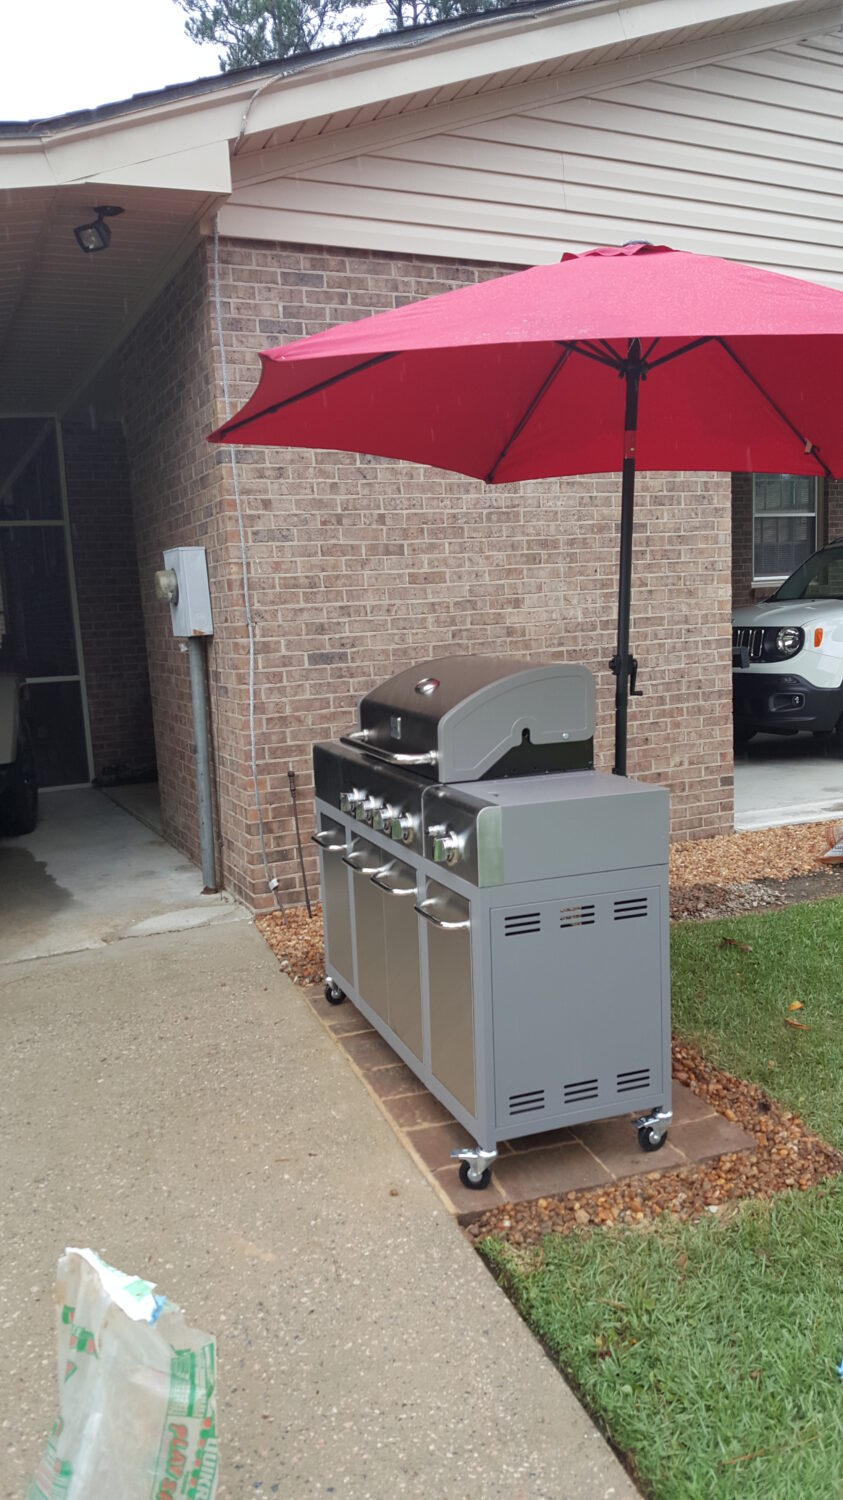 Great Grilling! Transform Unused Lawn Space Into A Grill Zone For Your Yard